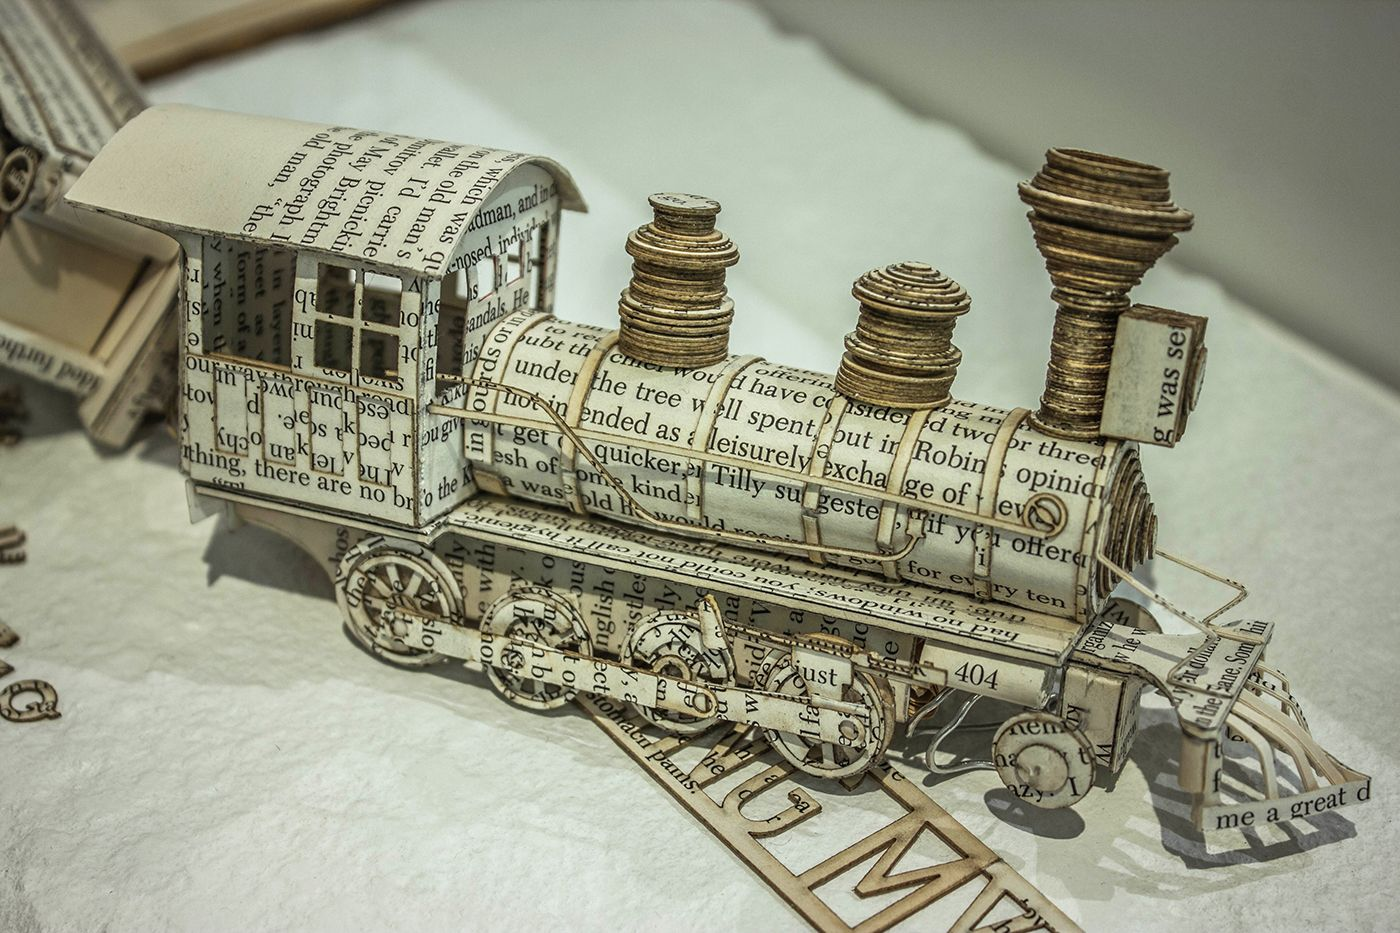 Book Sculpture: Derailing my train of thought on Behance